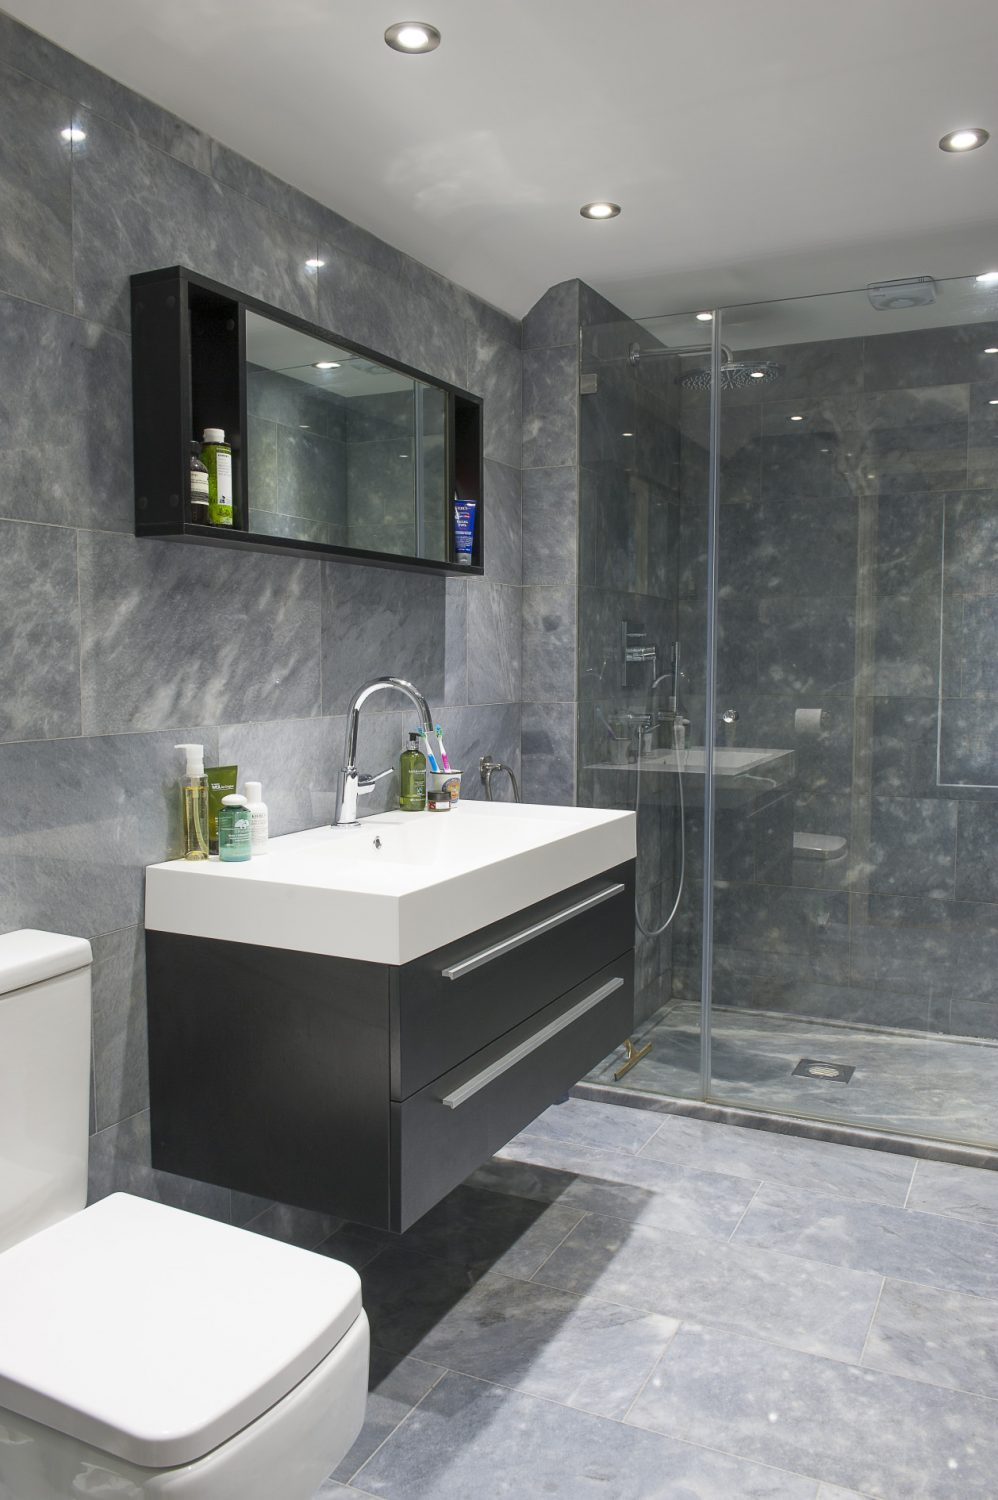 Sally has broken with the traditional style of the rest of the house by installing a contemporary en suite shower room with floor to ceiling grey marble and lacquered black units.